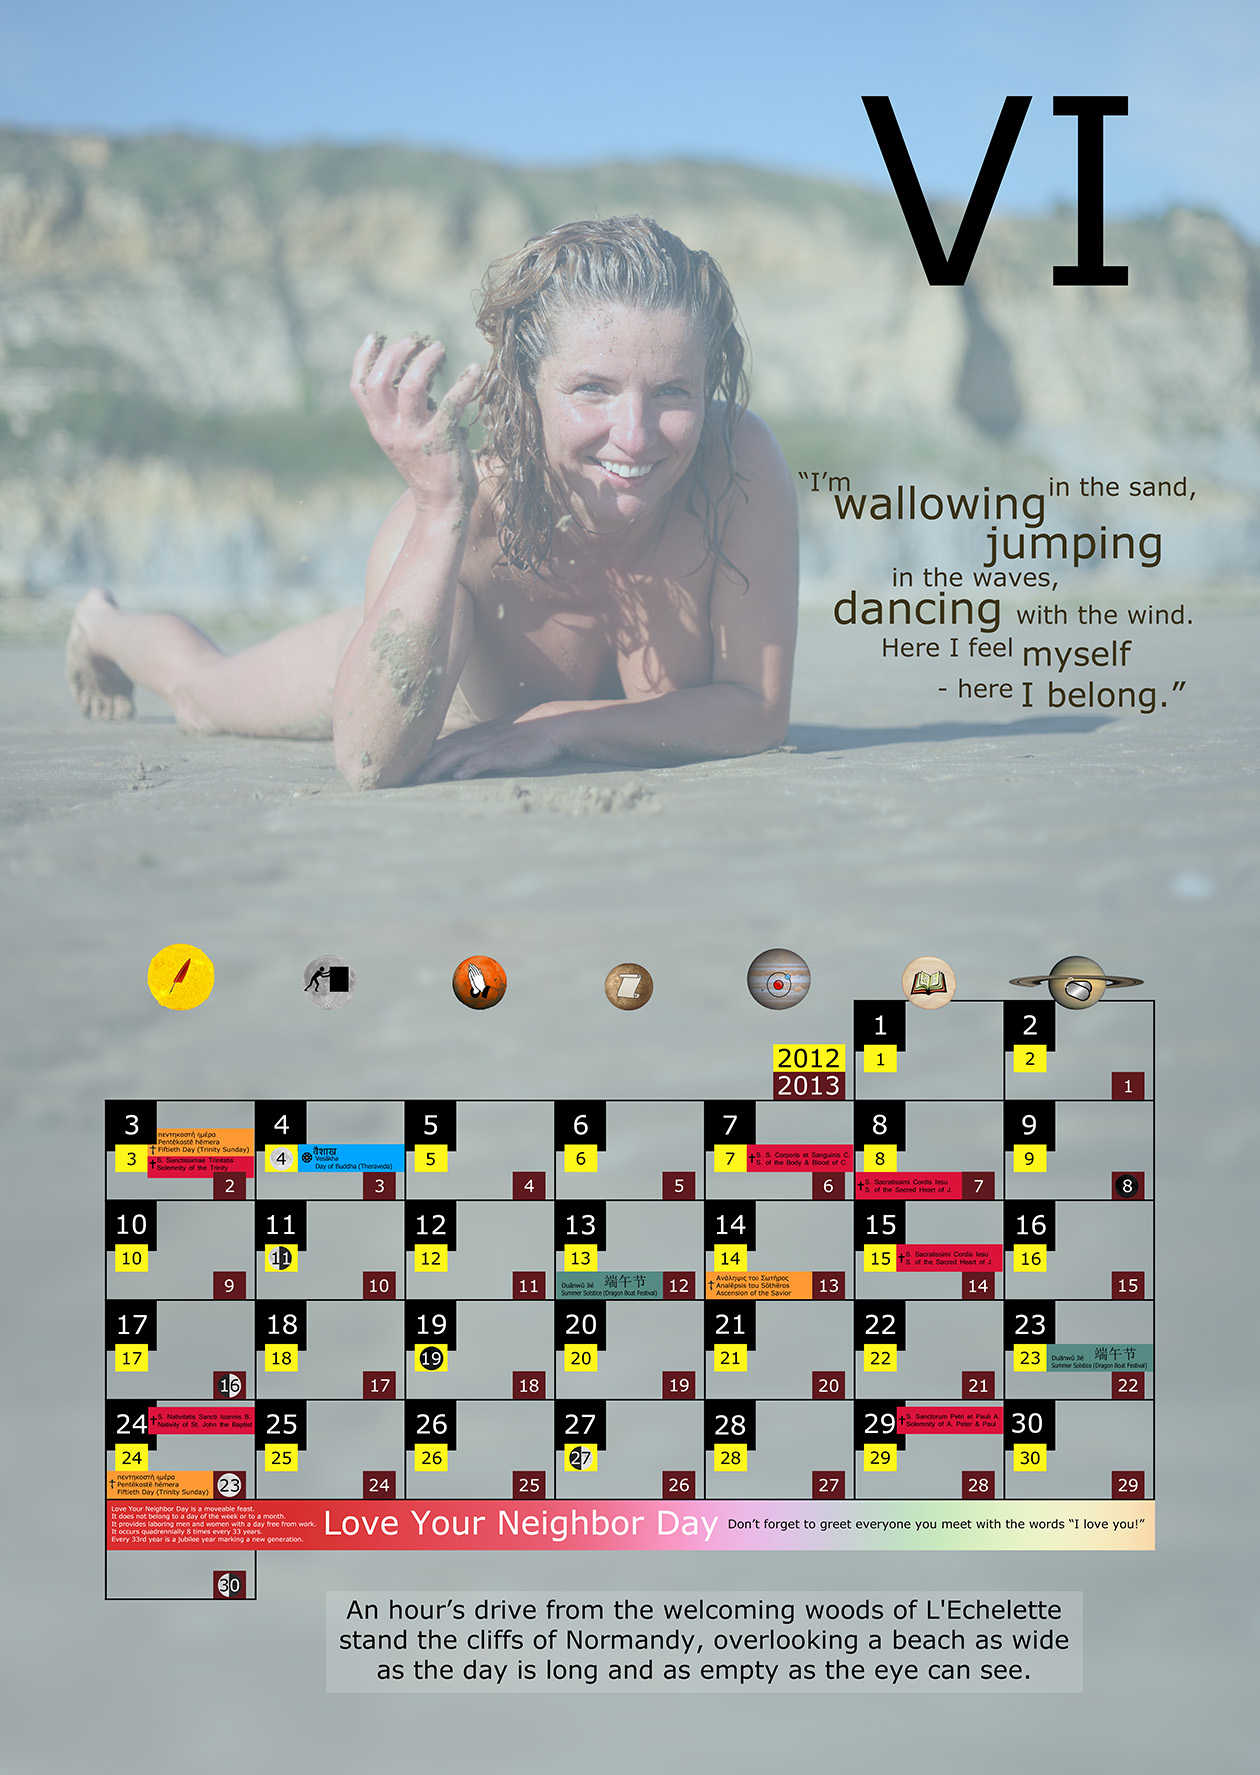 A monthly holiday calendar for June 2012 and 2013